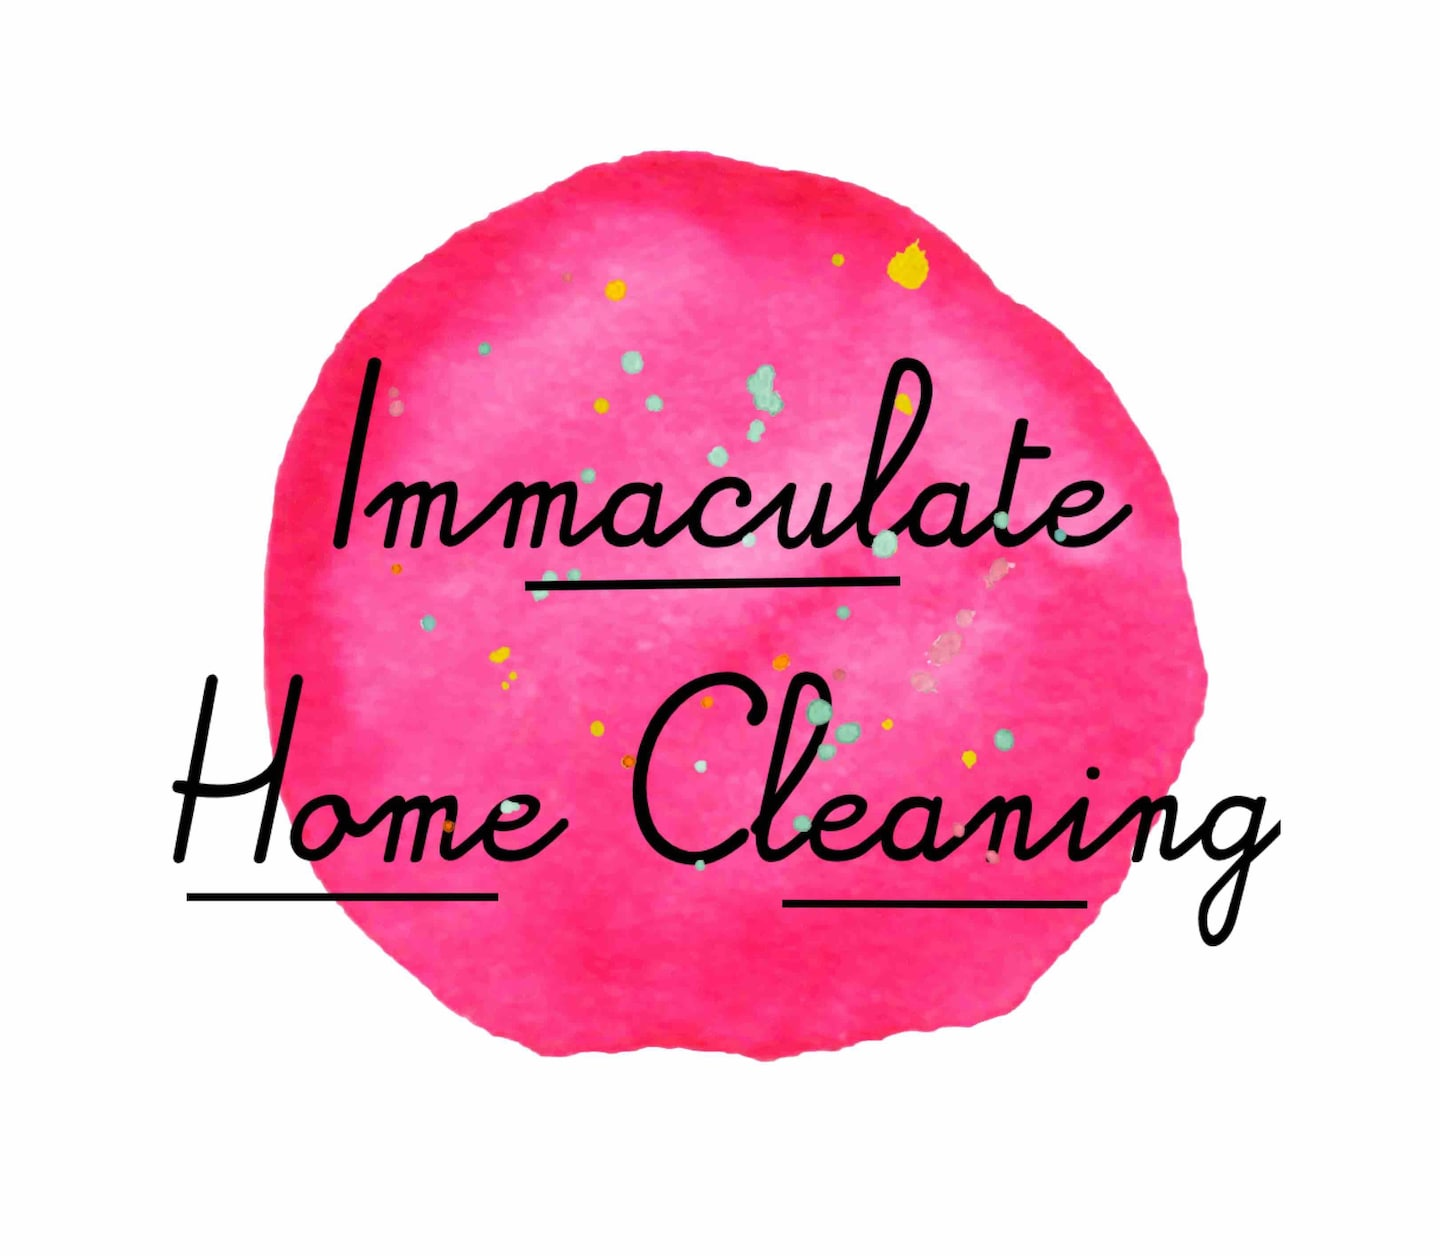 Immaculate Home Cleaning